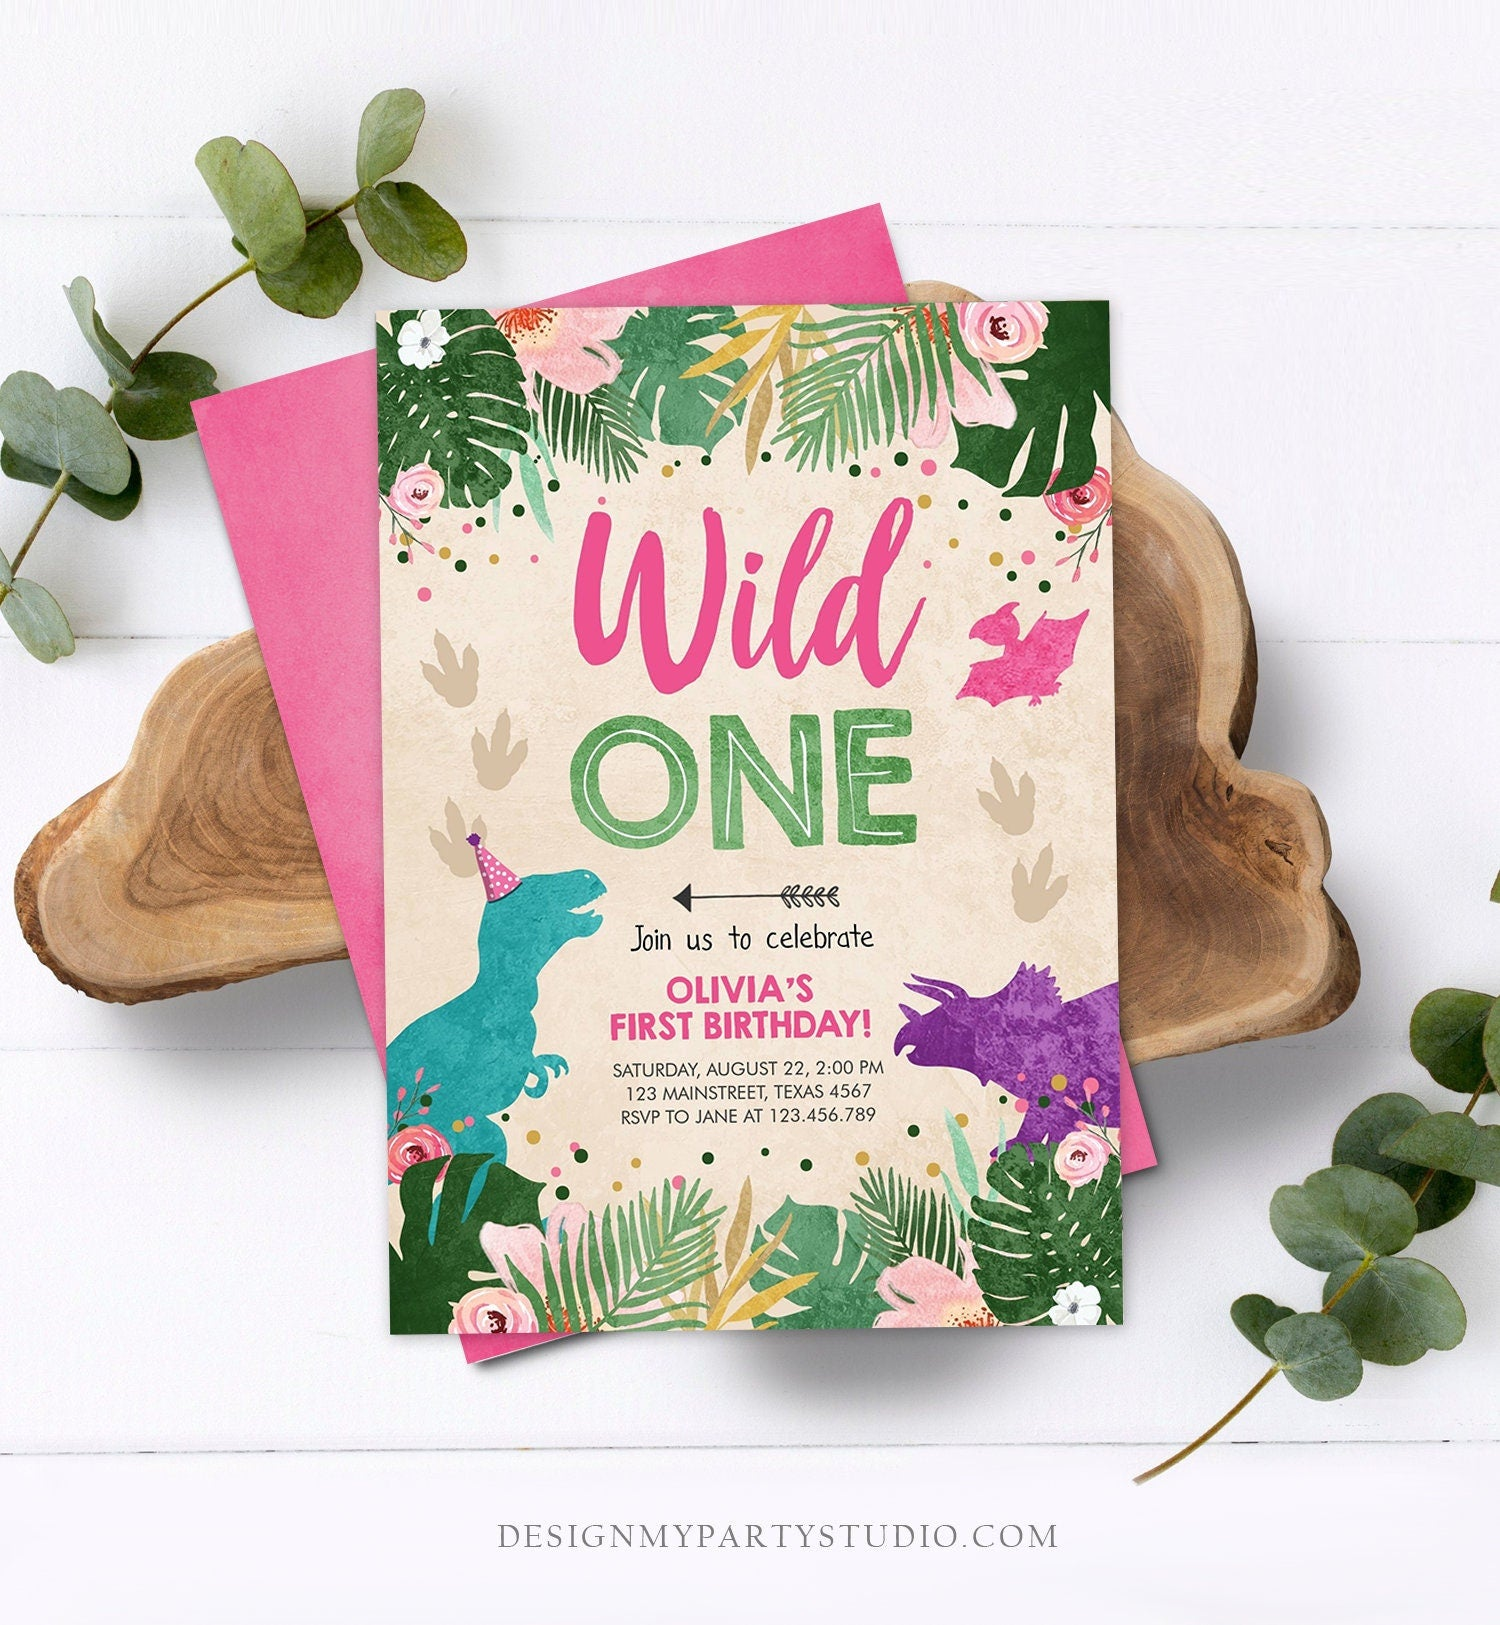 Editable Wild One Birthday Invitation Dinosaur Dino Party Girl 1st First Birthday Pink Purple Digital Download Corjl Template Printable 0146